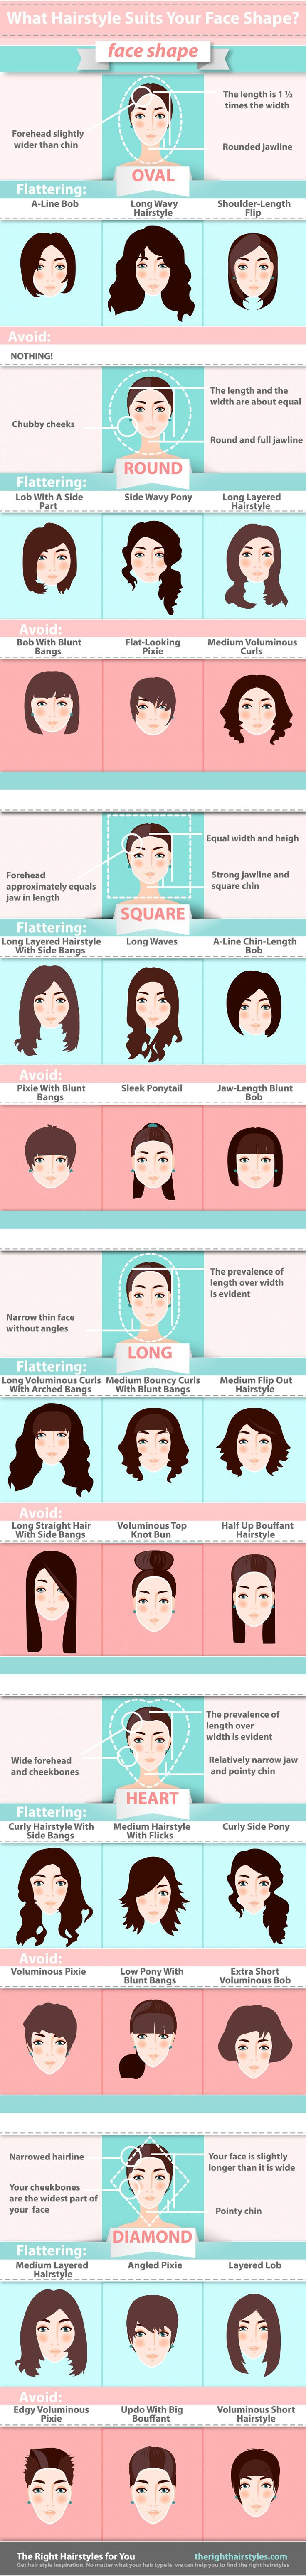 What Hairstyle Suits Your Face Shape very useful! #hair